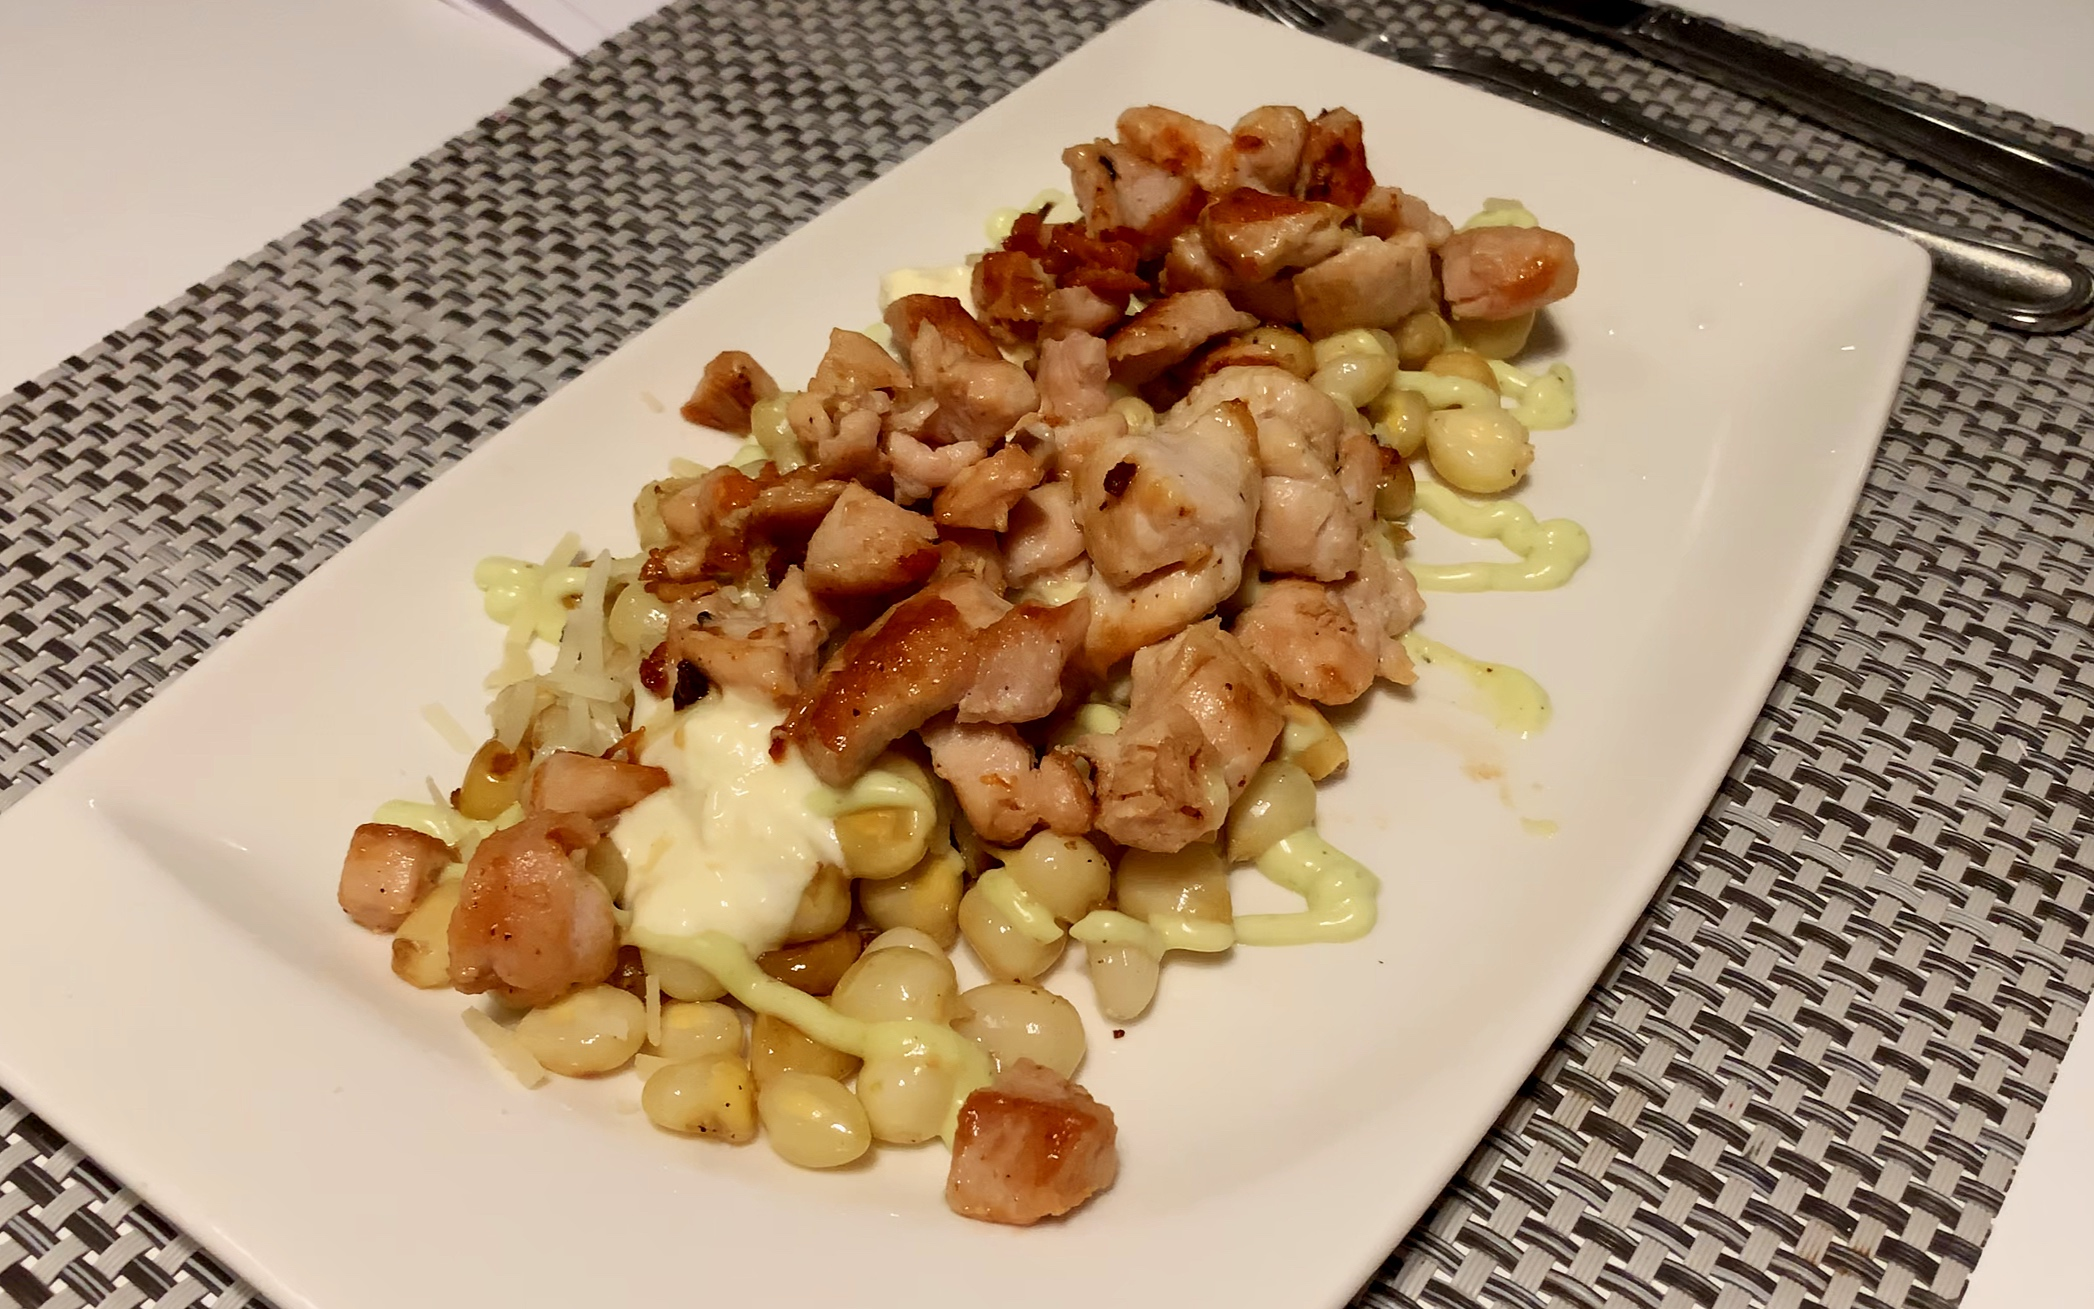 """As well as the traditional lava rocks menu, Hot Rocks offers """"Guayaquils favourite urban food', Bandejita Guayaquilena. This was the chicken version- it was delicious!"""